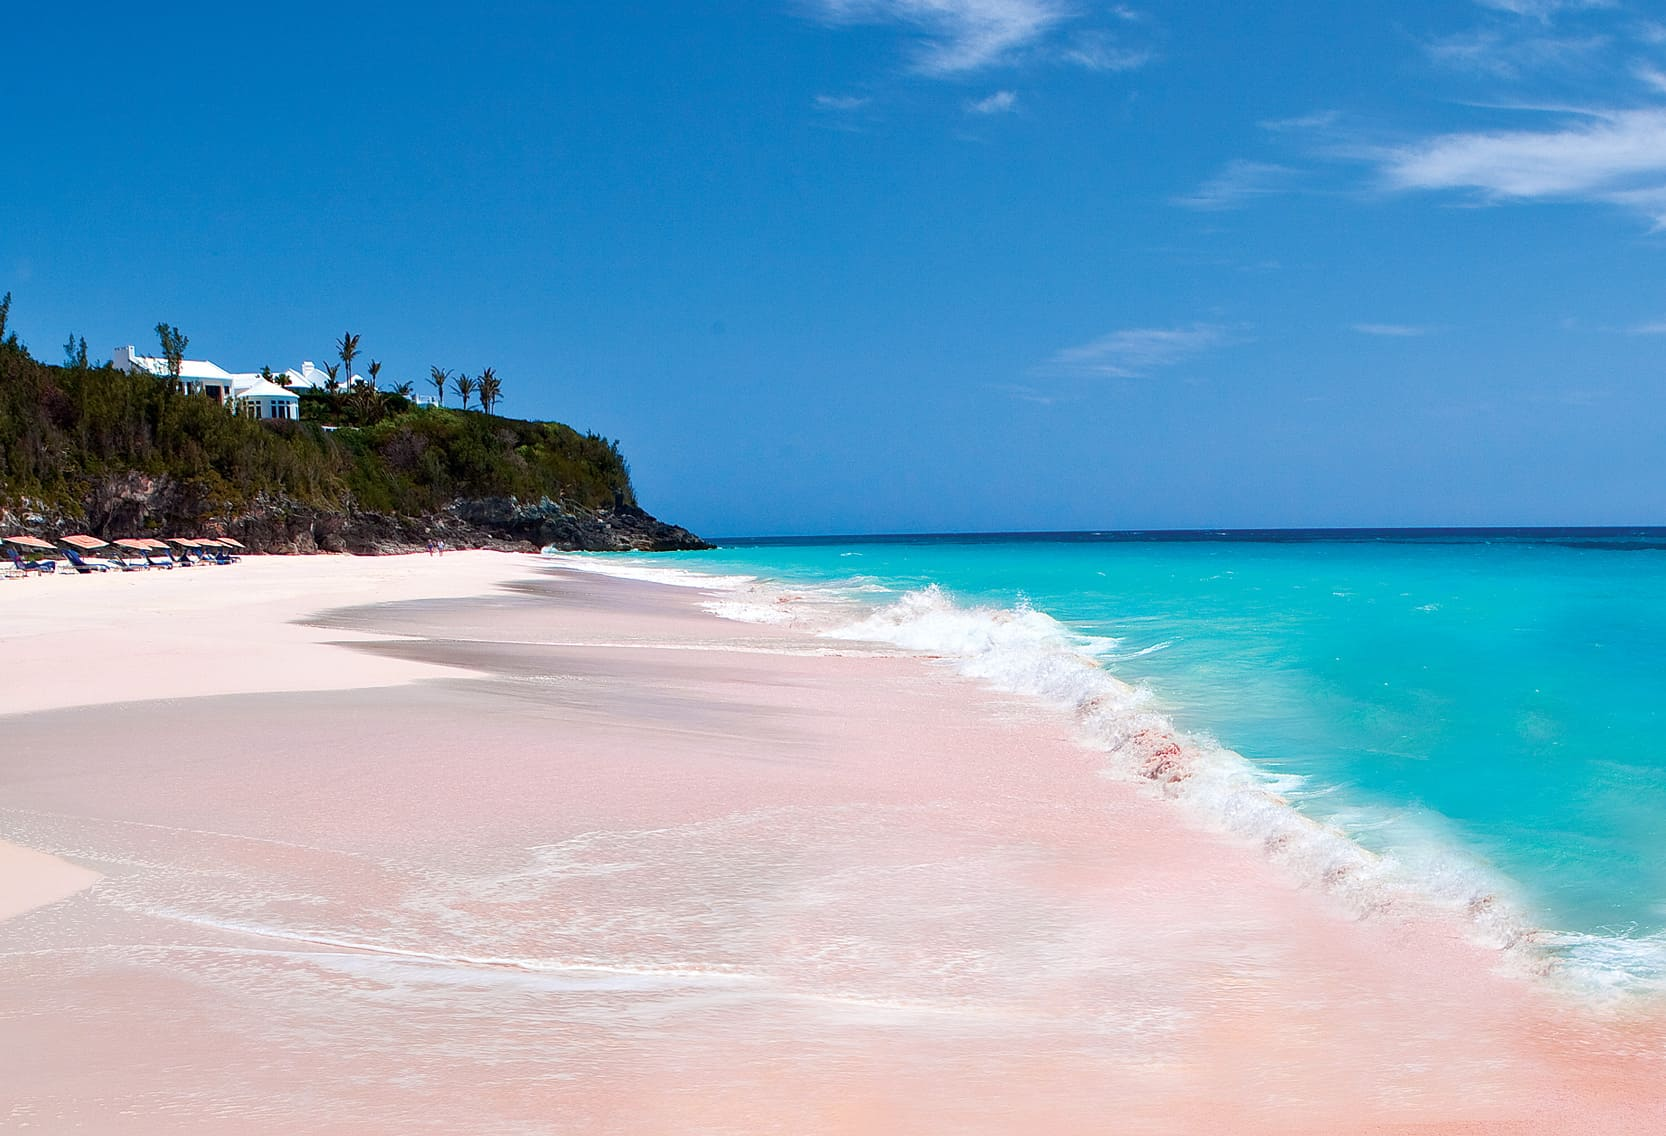 Pink Sand Beach - Most Unique Beaches Around the World